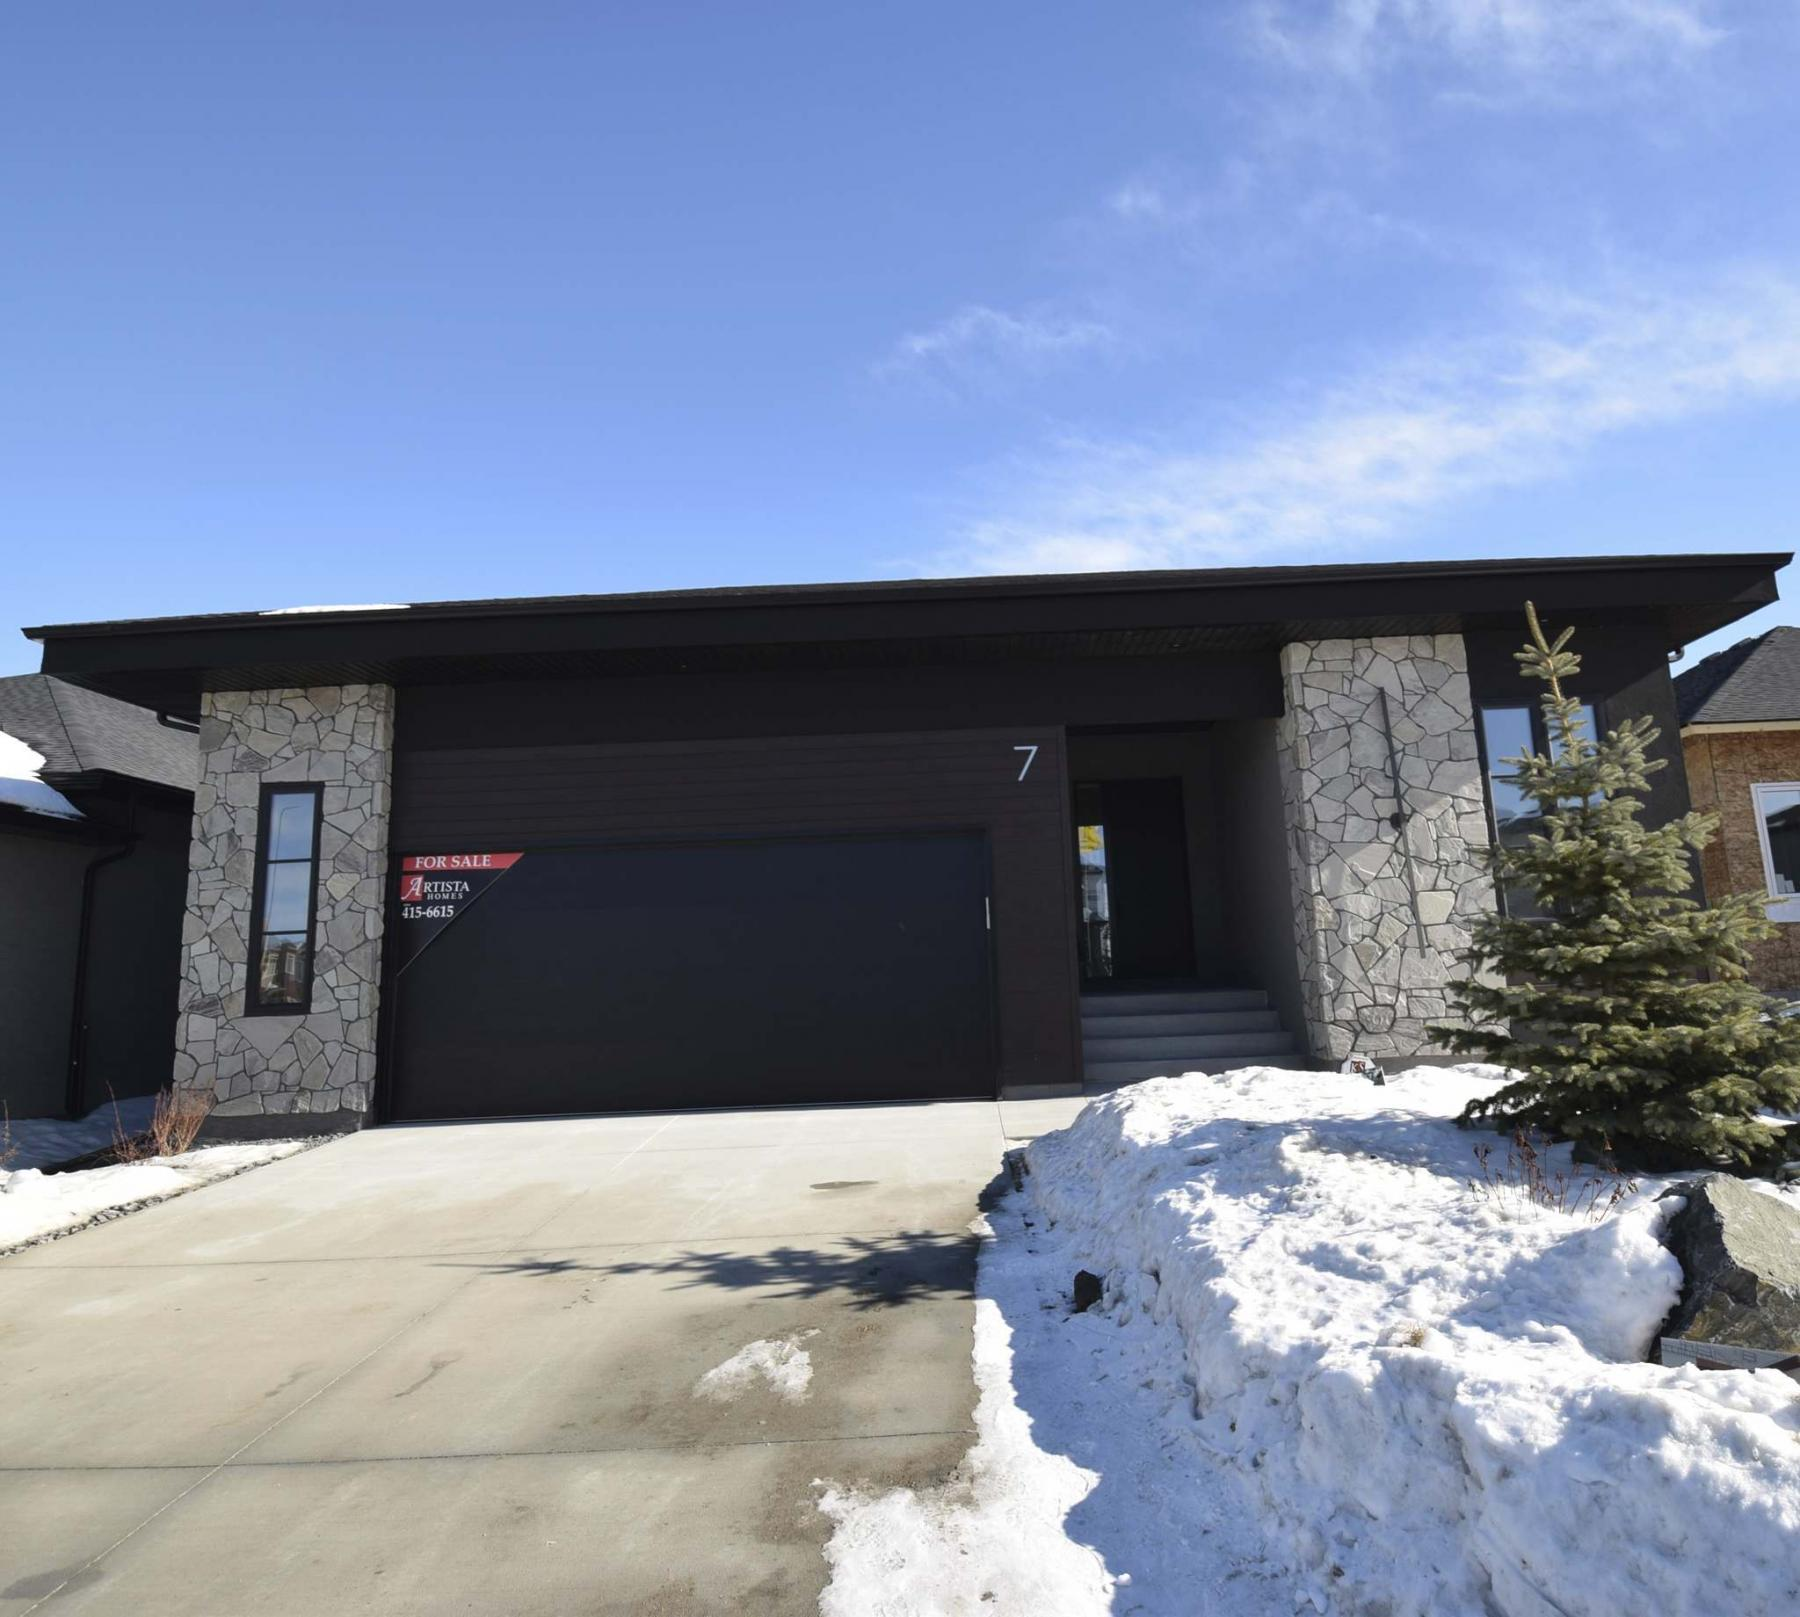 <p>Photos by Todd Lewys / Winnipeg Free Press</p><p>The classy walk-out bungalow features an uncomplicated design that offers a breathtaking synergy of style and function.</p>